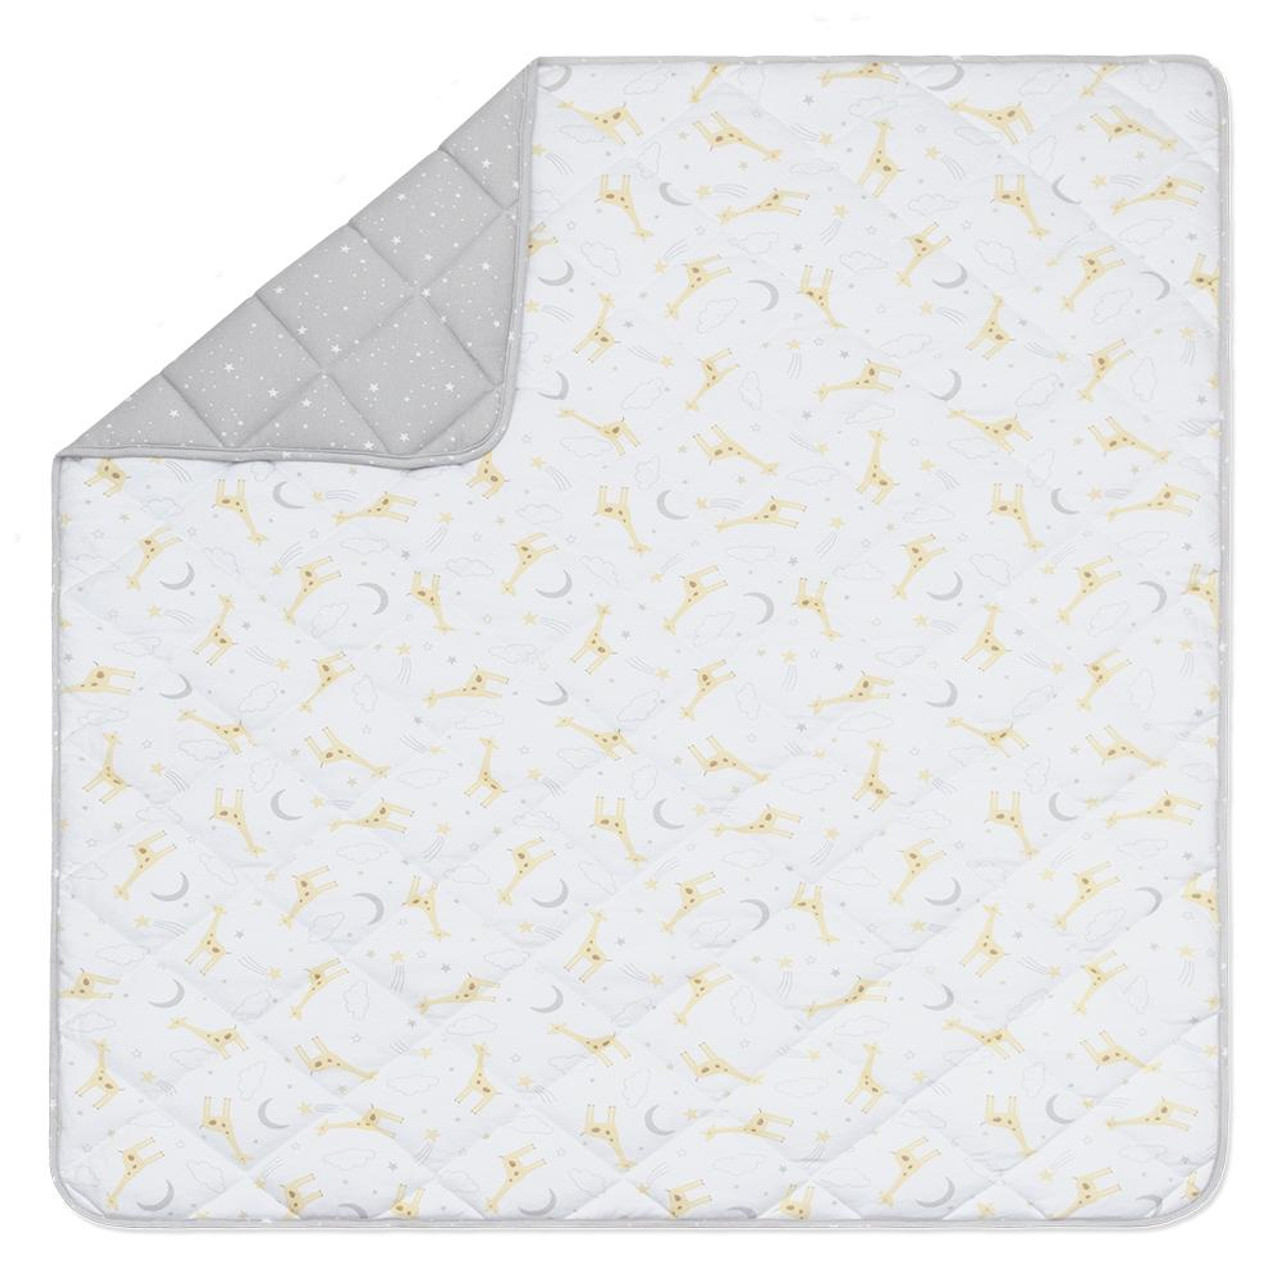 Living Textiles Jersey Cot Comforter at Baby Barn Discounts